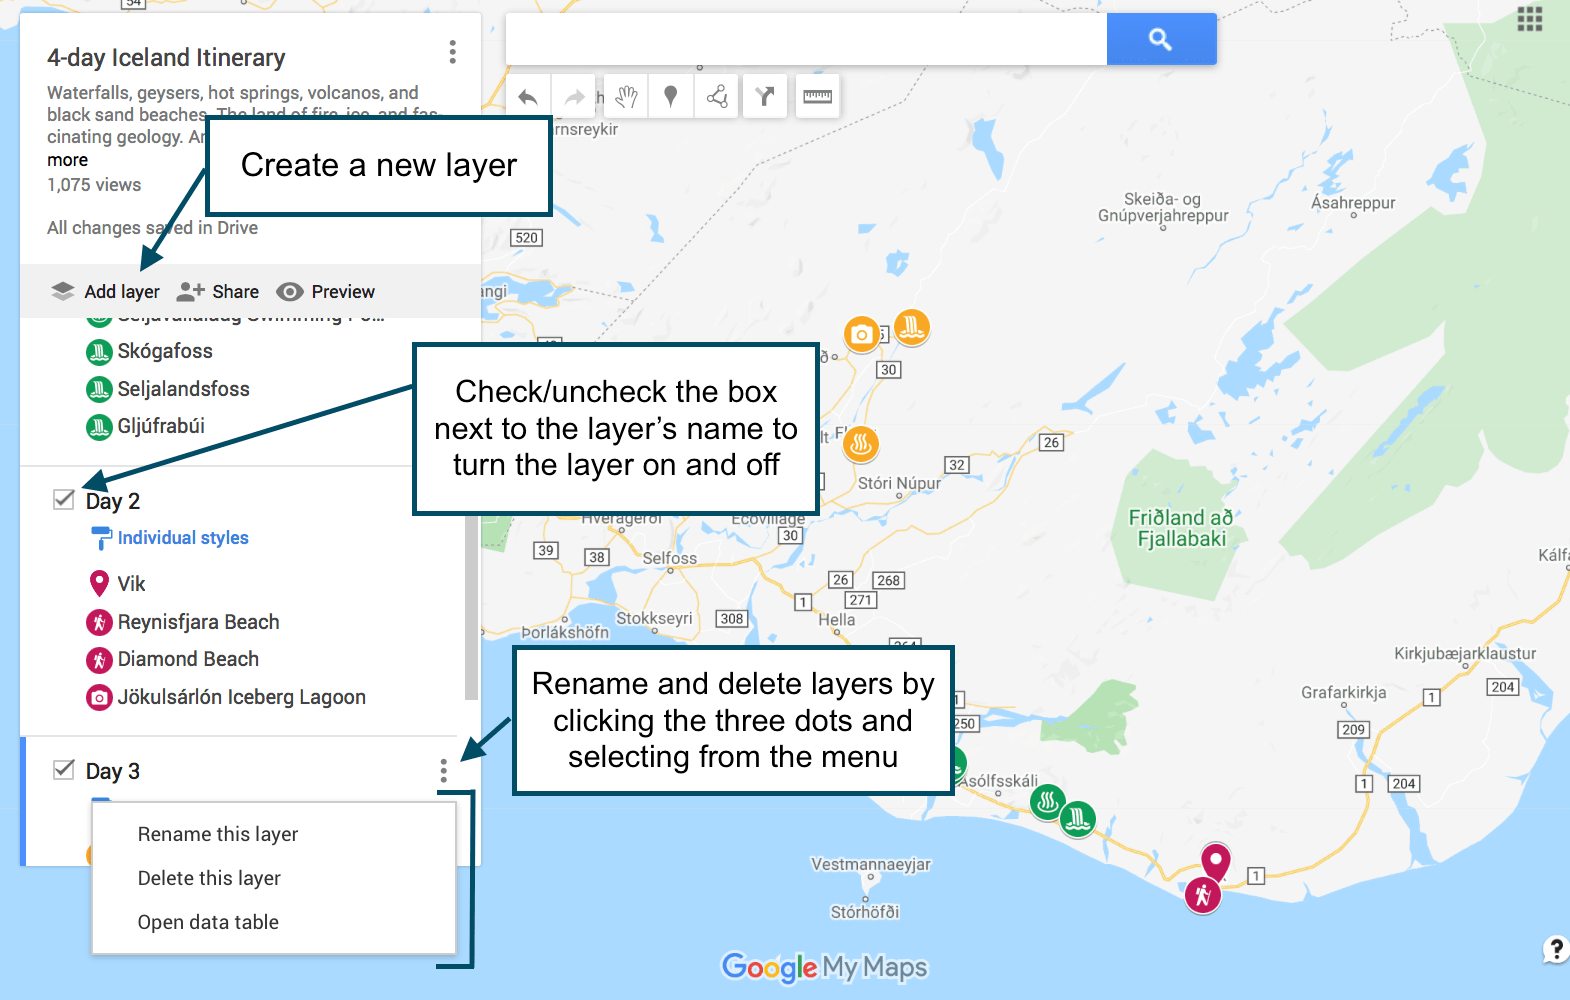 How to use layers in Google Maps to create a custom travel itinerary